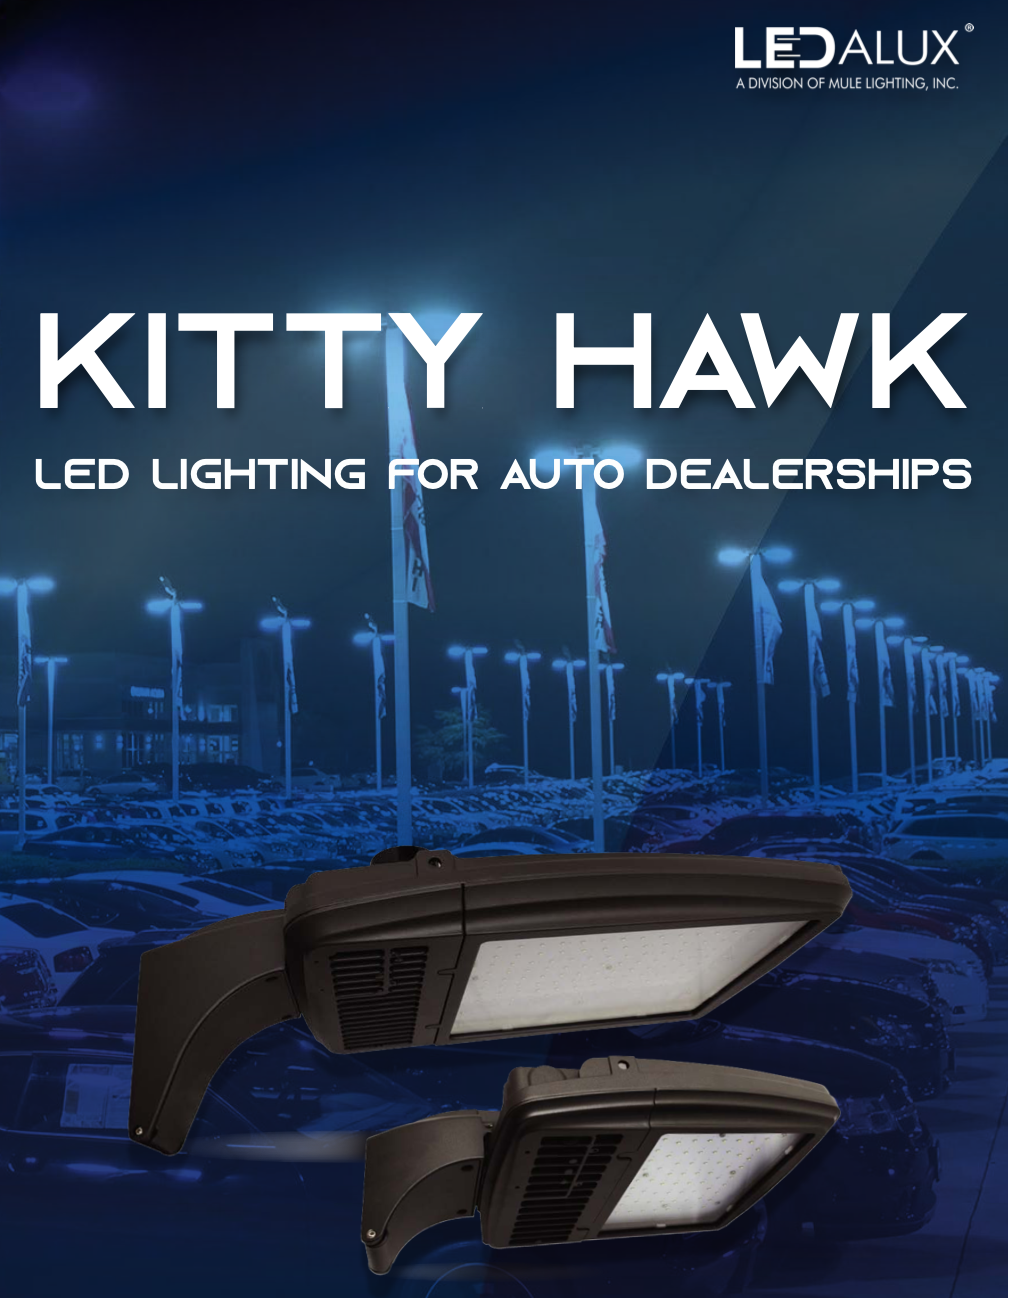 LEDalux KITTY HAWK – LED Lighting for Auto Dealerships Literature